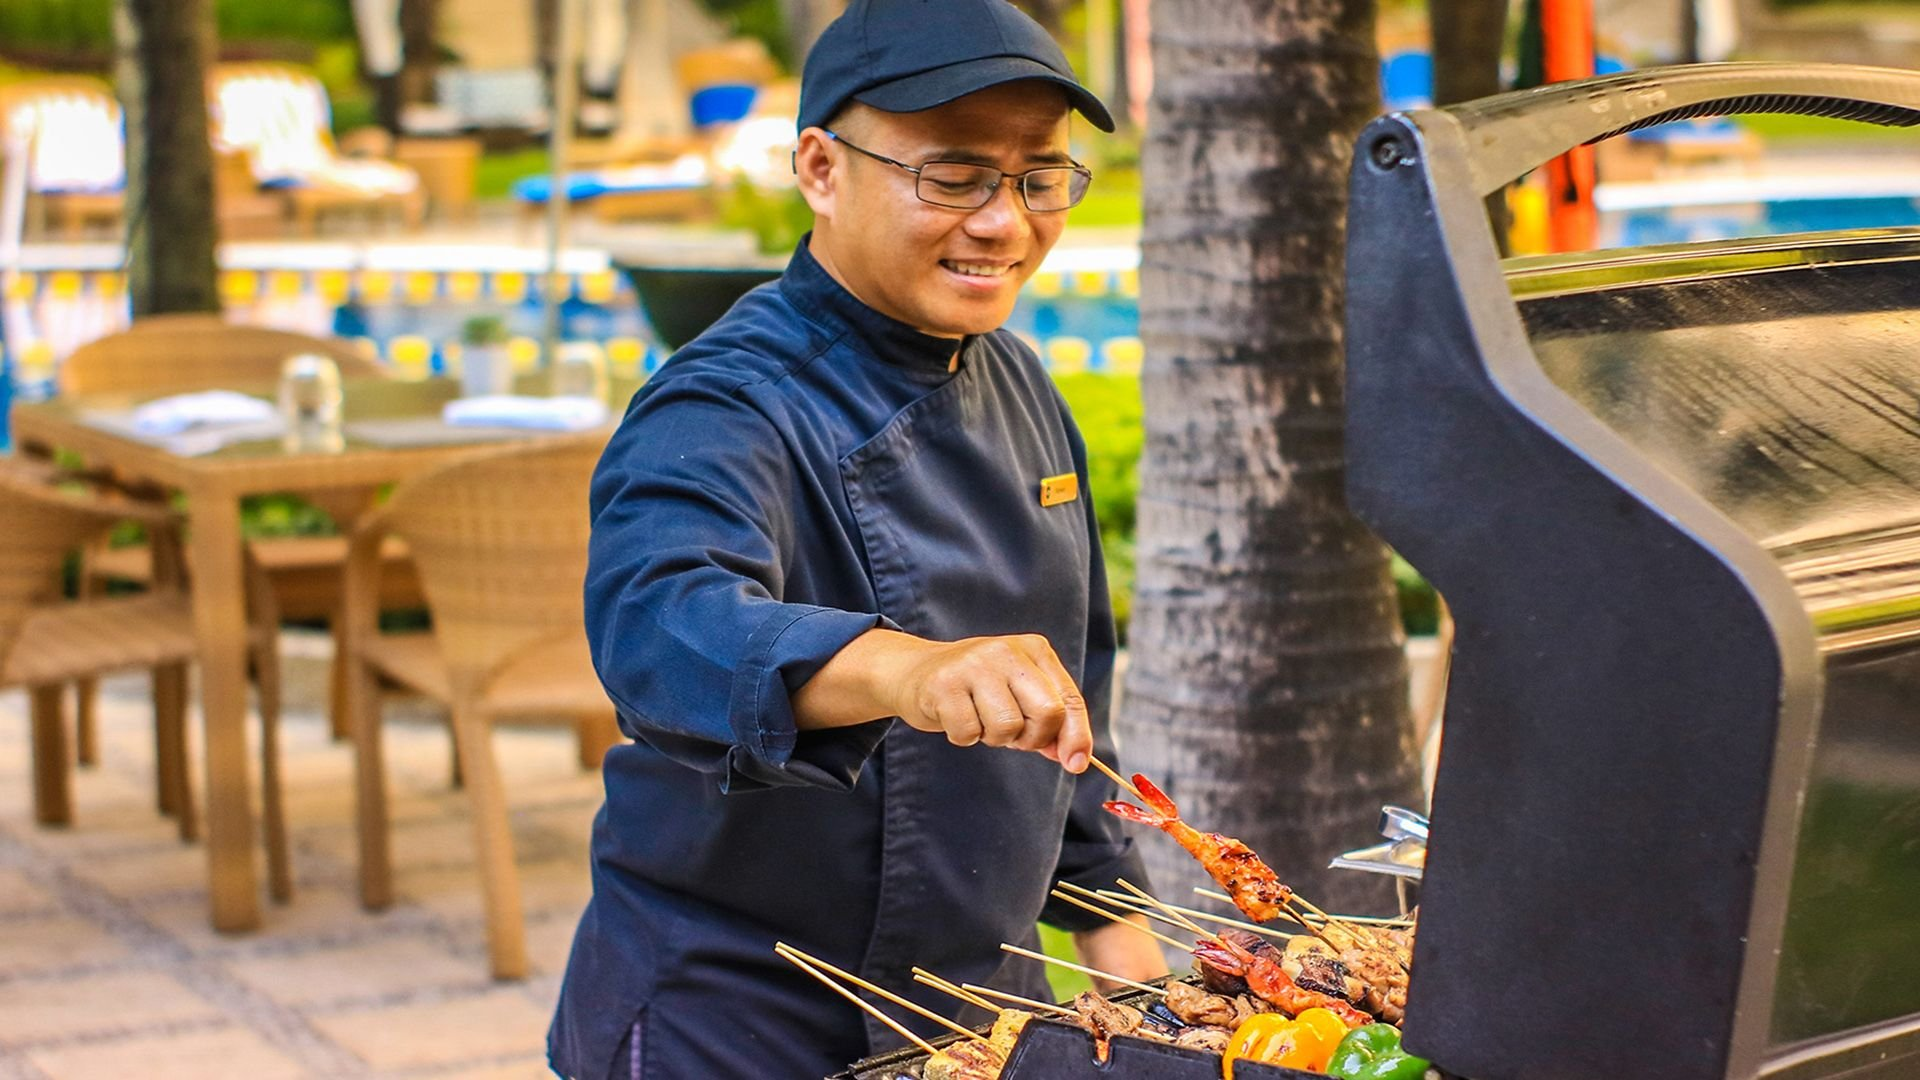 Where To Order: Al Fresco Dining And Takeaway Treats This Father's Day With Edsa Shangri-La